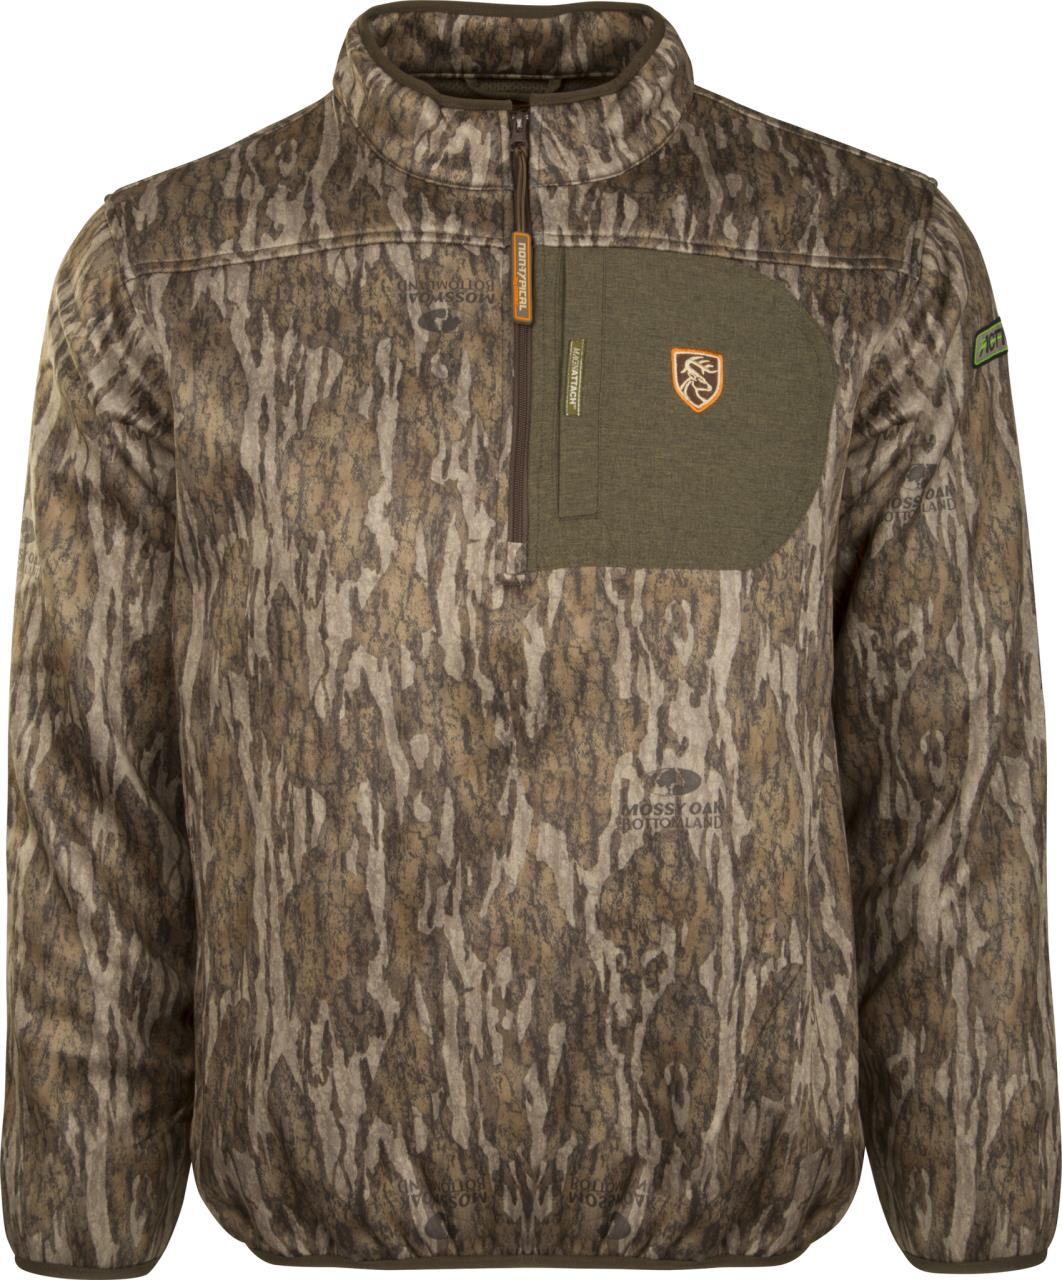 293037ce4 Drake Youth Non-Typical Endurance 1 4 Zip with Agion® - 659601419089